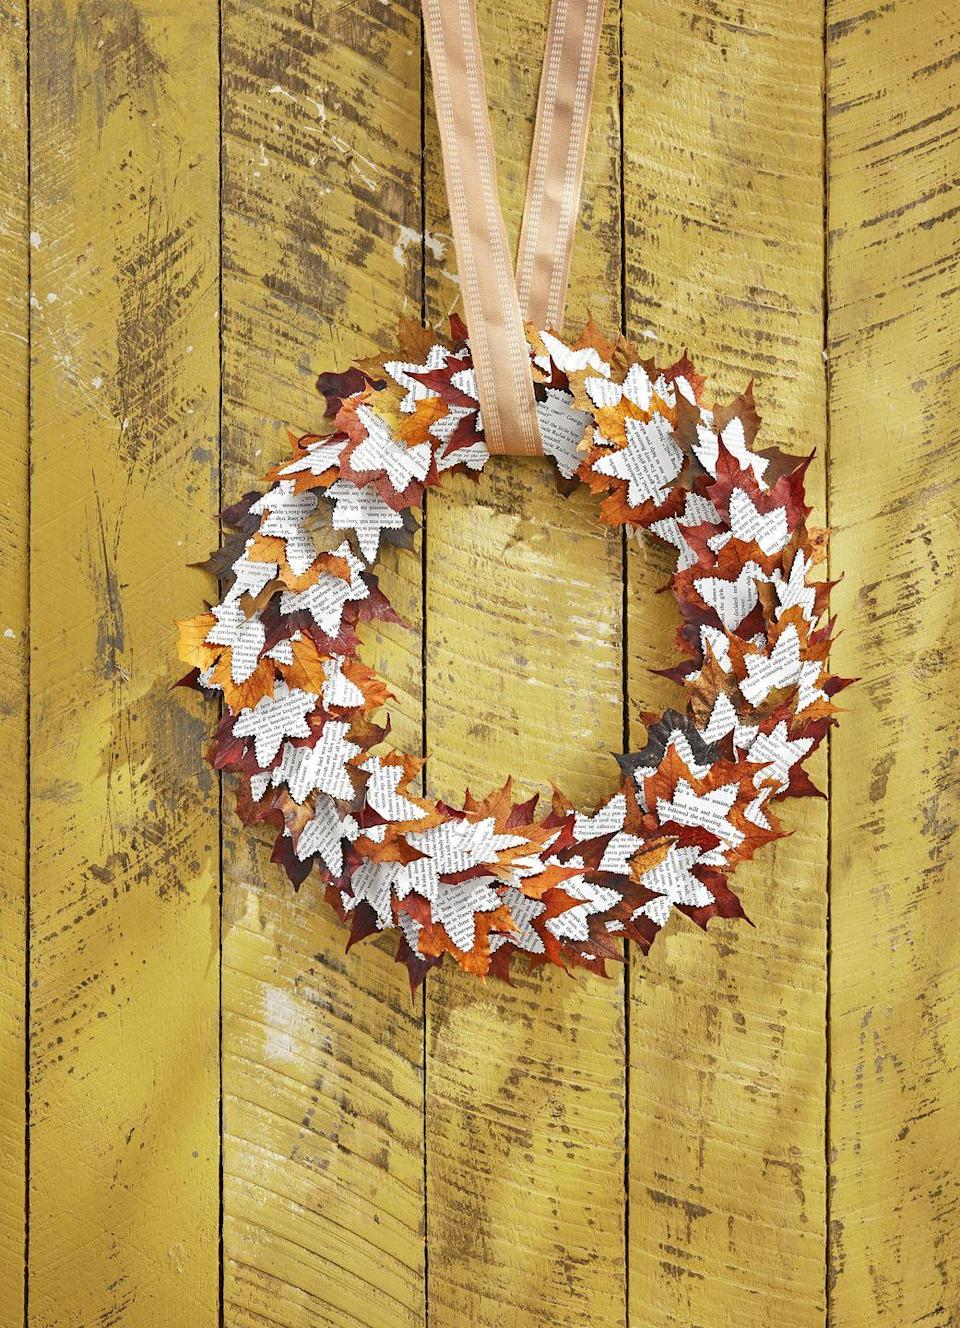 """<p>Take a page from our DIY book, and get to cutting out leaf shapes for this creative fall wreath. </p><p><strong>Make the wreath:</strong> Draw a 3-inch-wide maple leaf shape on a piece of cardboard and cut out to create a <a href=""""https://www.amazon.com/Harvest-Stencil-Fall-Leaves-11/dp/B00U7XX83G?linkCode=ogi&tag=syn-yahoo-20&ascsubtag=%5Bartid%7C10050.g.2610%5Bsrc%7Cyahoo-us"""" rel=""""nofollow noopener"""" target=""""_blank"""" data-ylk=""""slk:stencil"""" class=""""link rapid-noclick-resp"""">stencil</a>. Trace on original pages (or, preferred, photocopied pages) of a vintage book—consider a fall-themed title or mystery novel—and cut out approximately 100 leaves with decorative scissors that have a """"torn paper"""" edge. Attach book page leaves to maple leaves with hot glue. Attach layered leaves to a 16-inch wreath form with hot glue, layering and overlapping them as you go. Hang with burlap ribbon. </p>"""